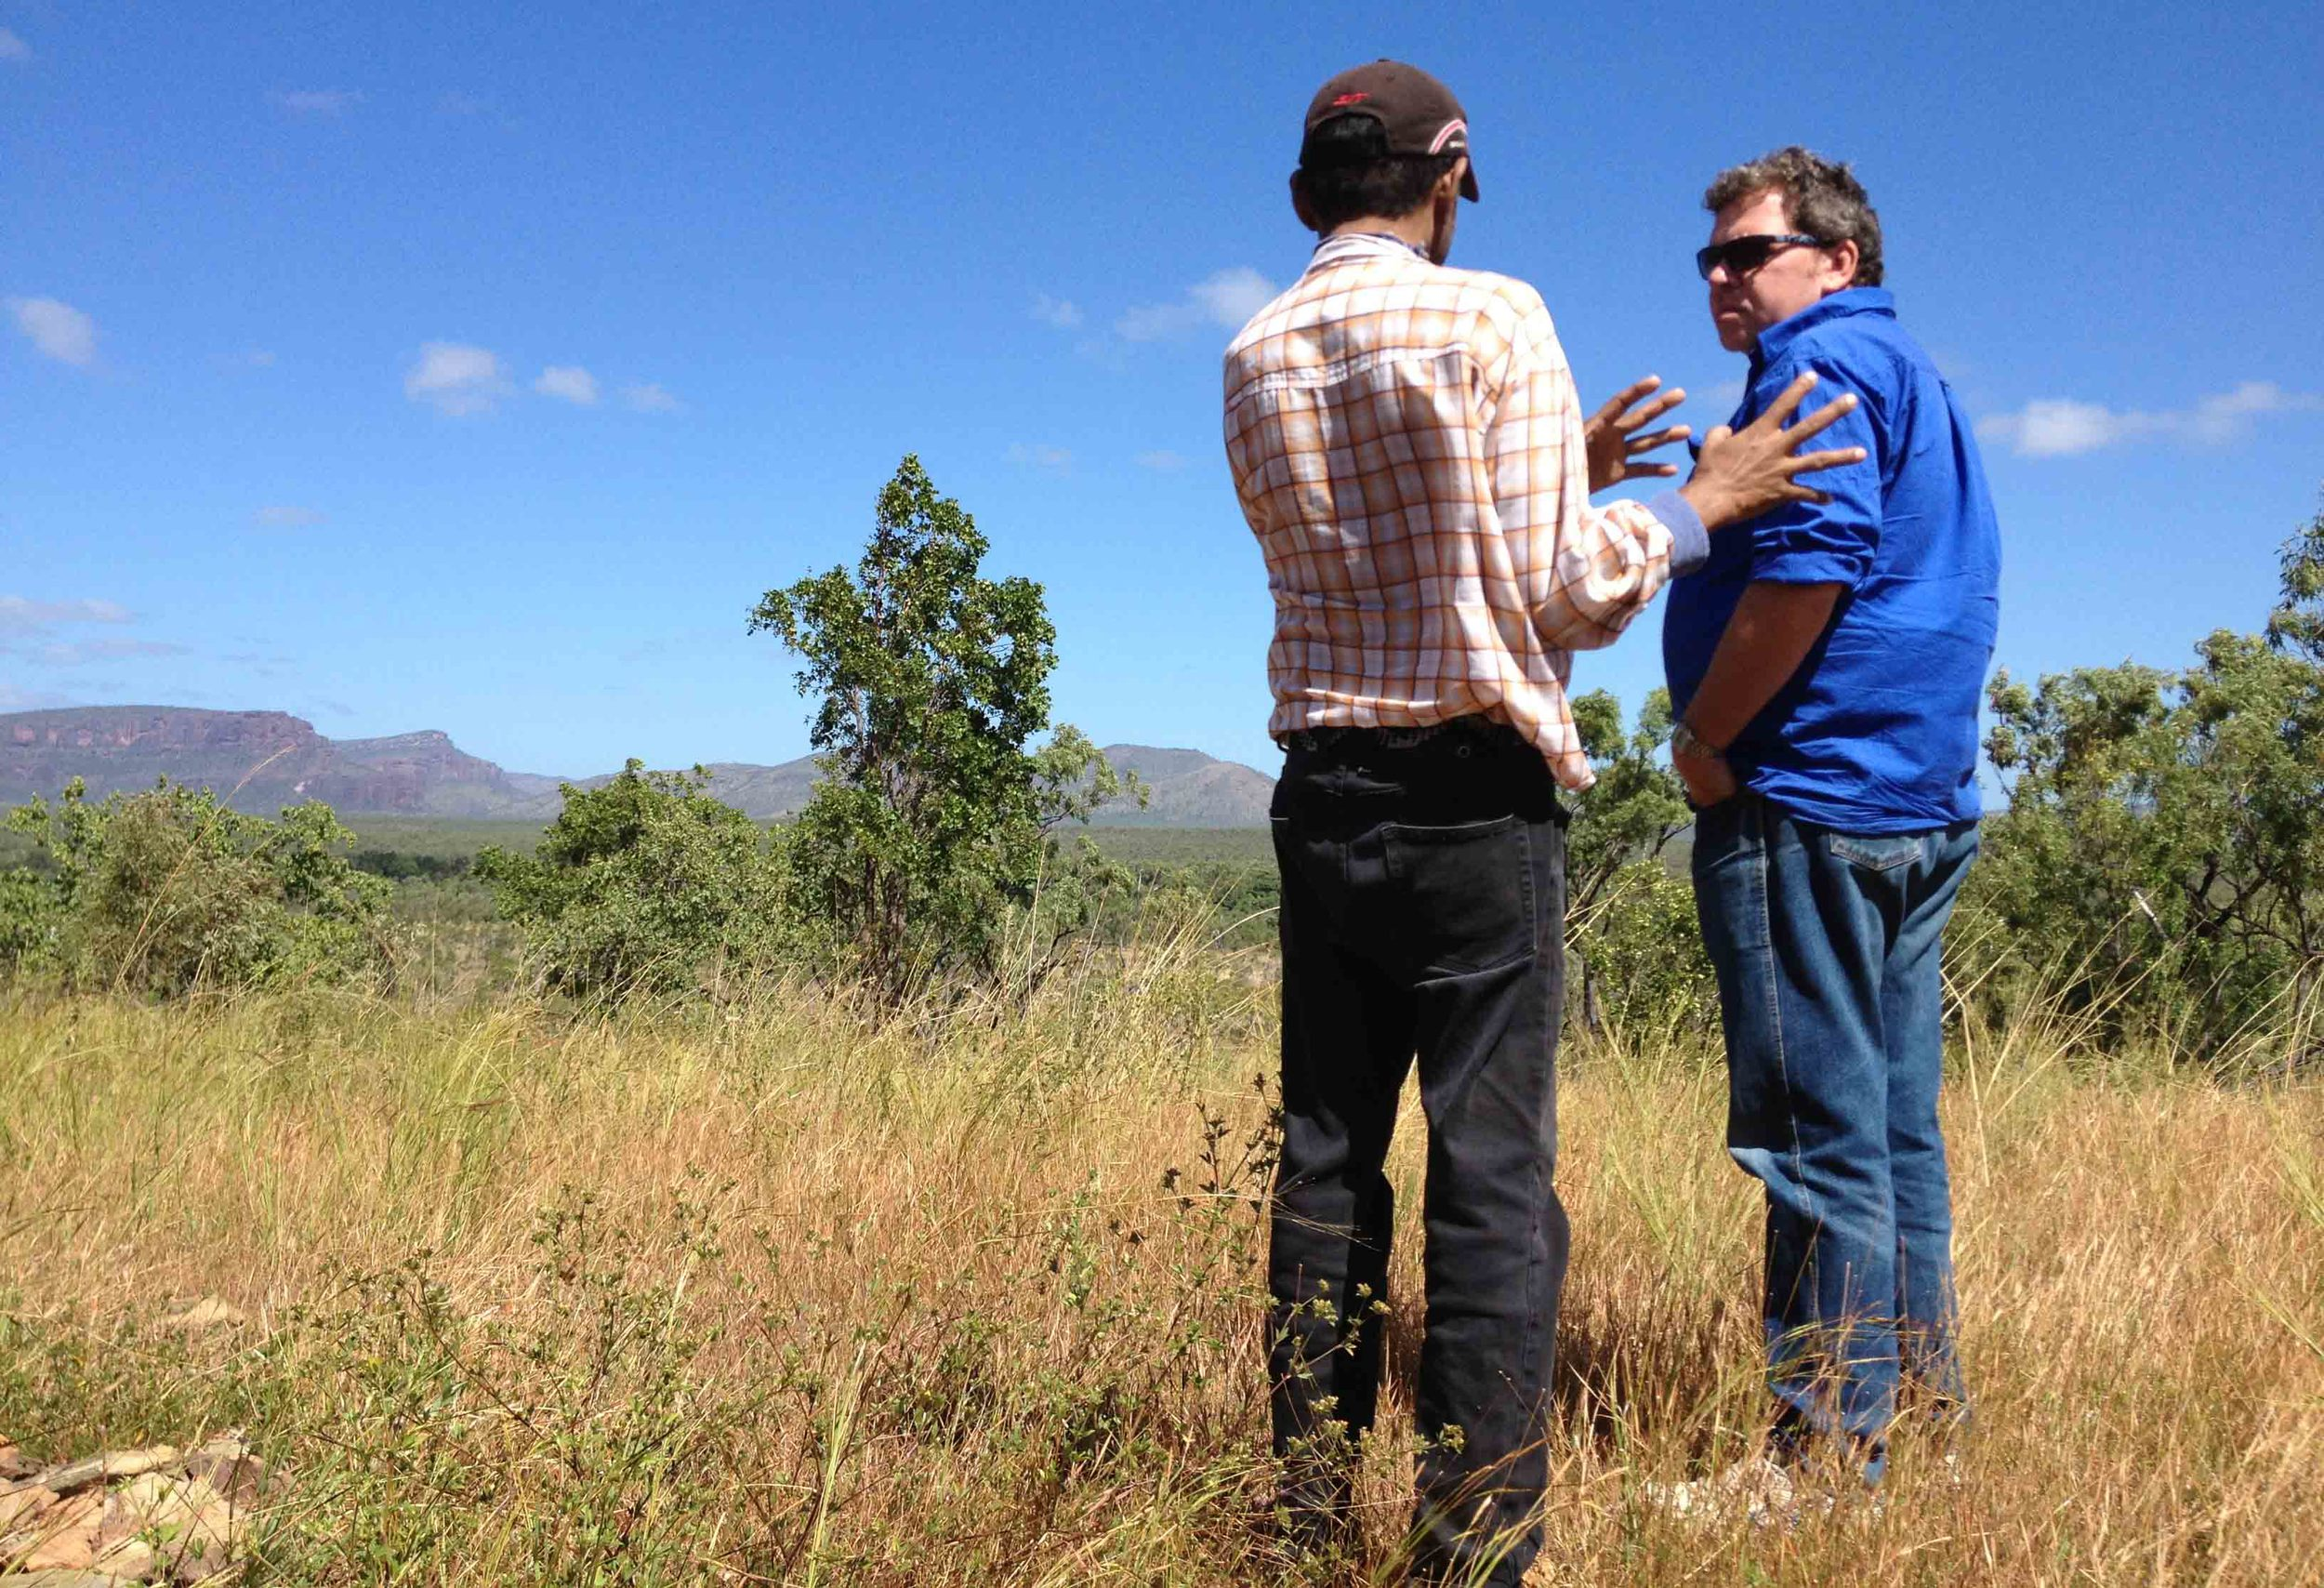 Rowan talks with traditional owner on country near Mareeba, Queensland